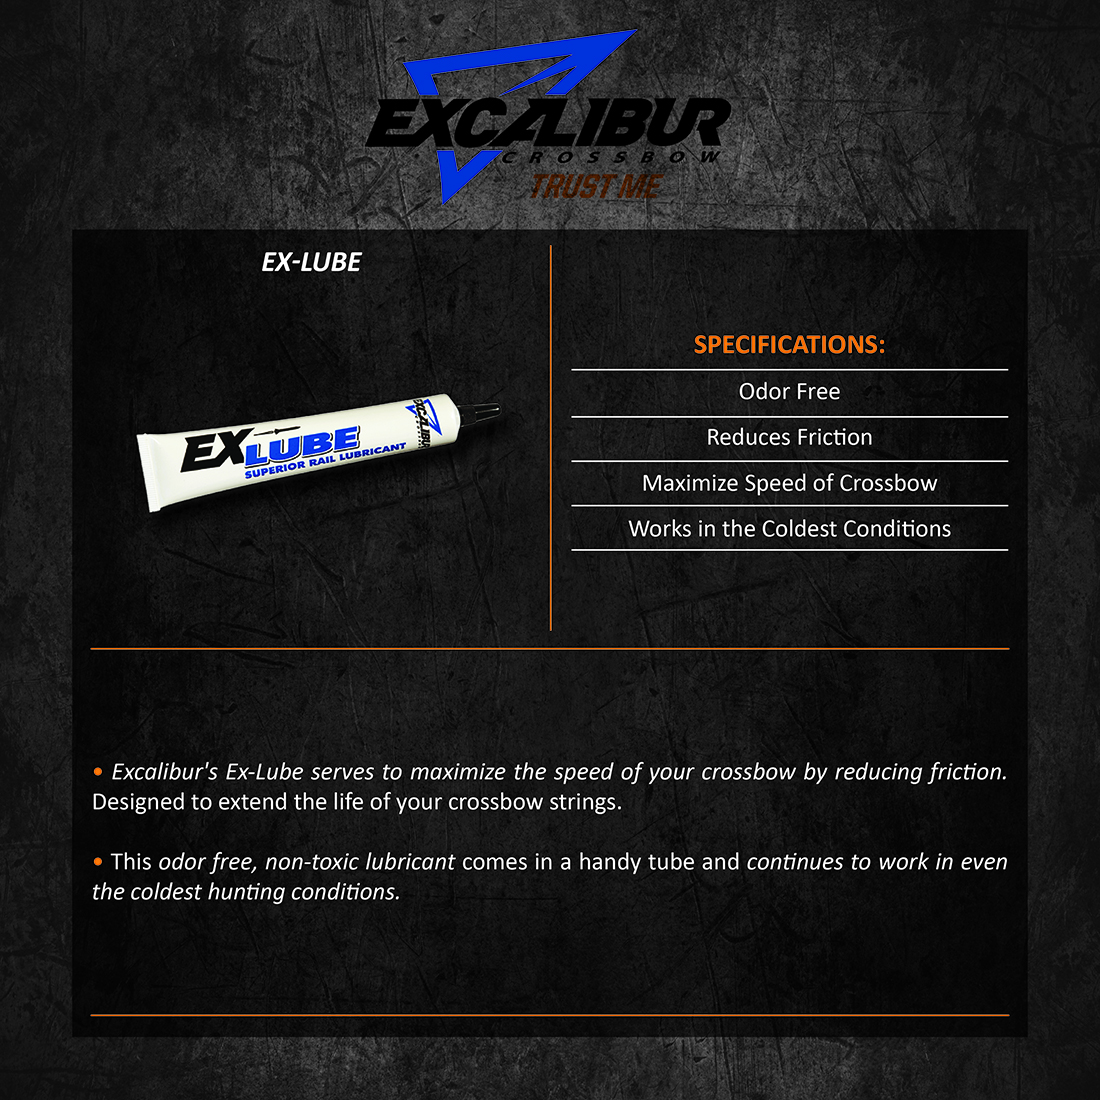 Excalibur_Ex_Lube_Product_Description